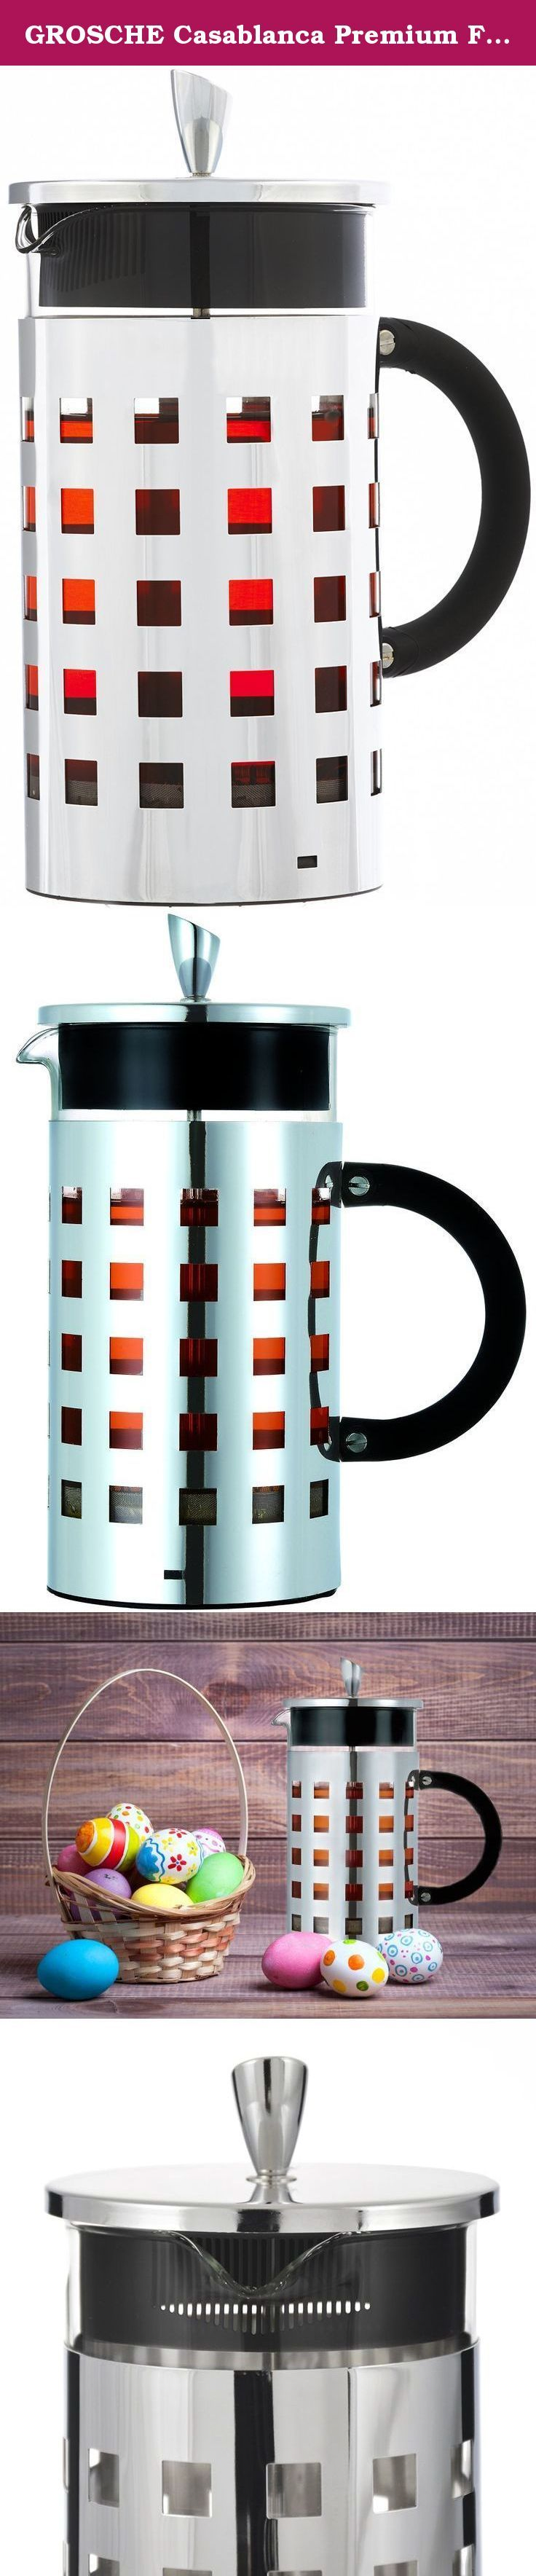 GROSCHE Casablanca Premium French Press 1000 ml / 8 Cup / 34 oz Capacity with All Stainless Steel Press Mechanism. Looking for Premium French Press Coffee and Tea maker, unlike anything your friends have? THE CASABLANCA FRENCH PRESS Quality you can see and feel! Brews the tastiest coffee and tea and gives a bold look and presence to your table top? That's the CASABLANCA French press coffee and tea maker by GROSCHE. A uniquely designed and crafted French press with fine chrome construction...